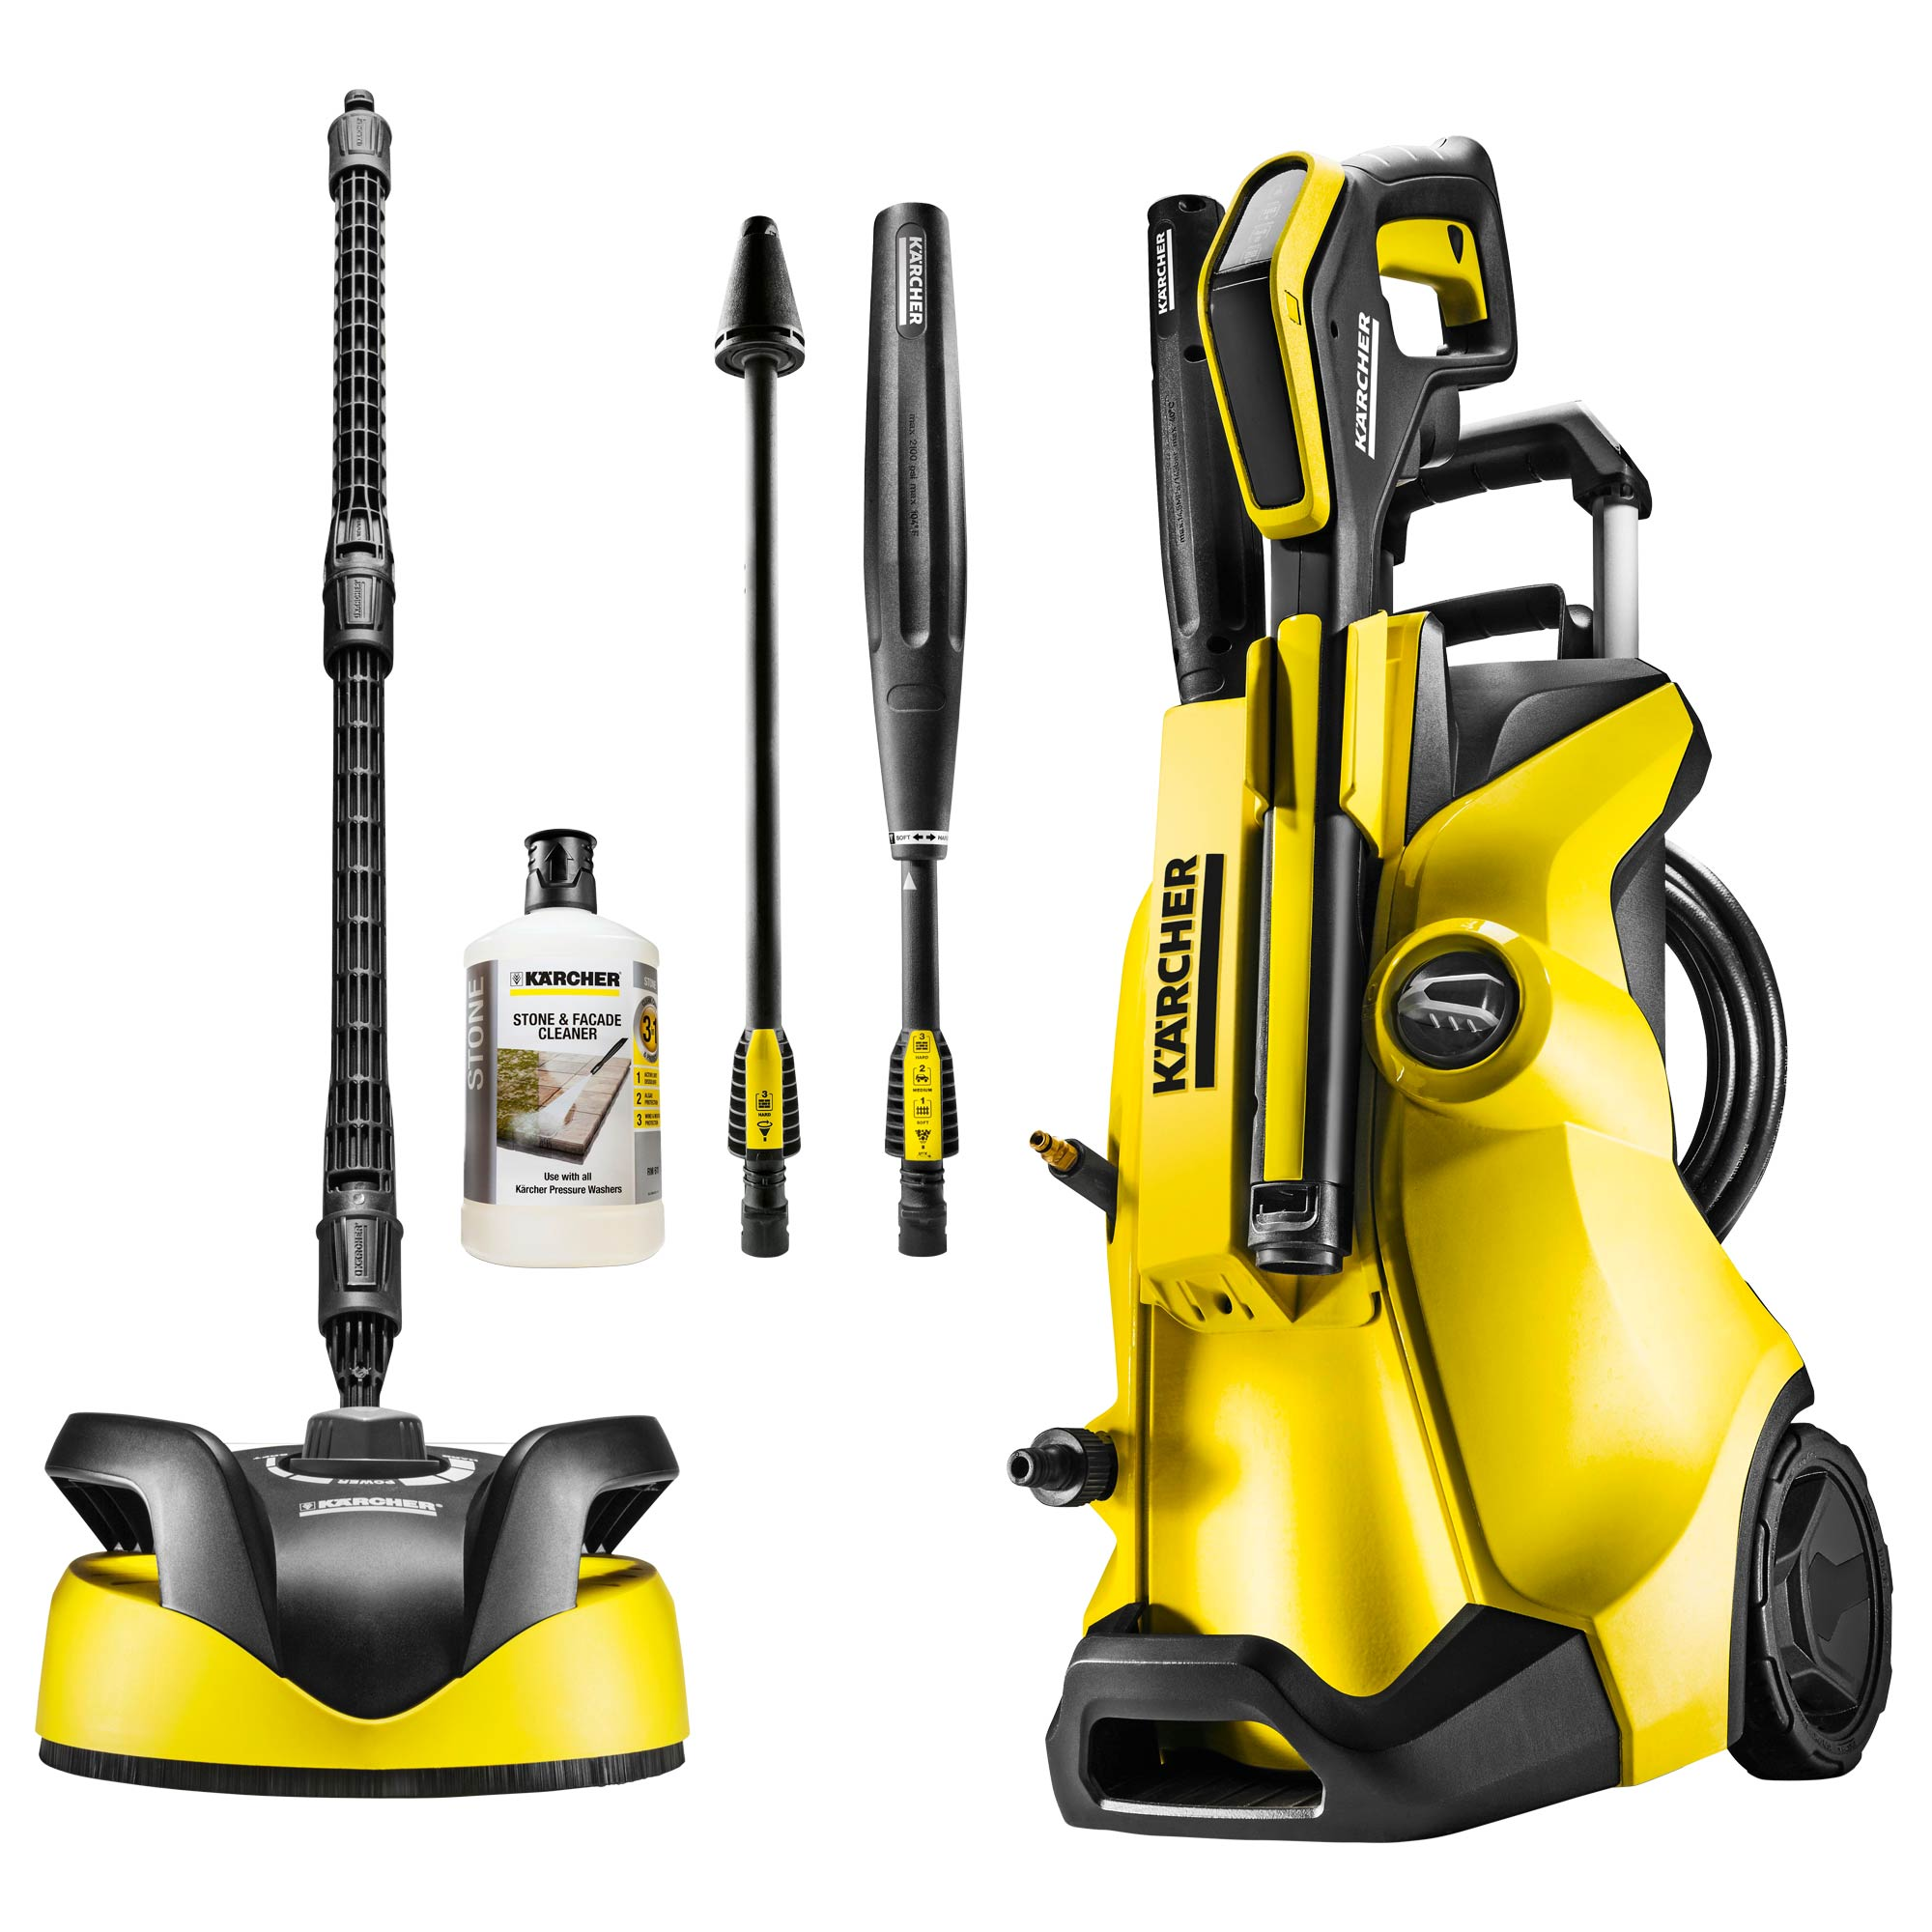 karcher 13240050 karcher k4 full control home pressure washer. Black Bedroom Furniture Sets. Home Design Ideas